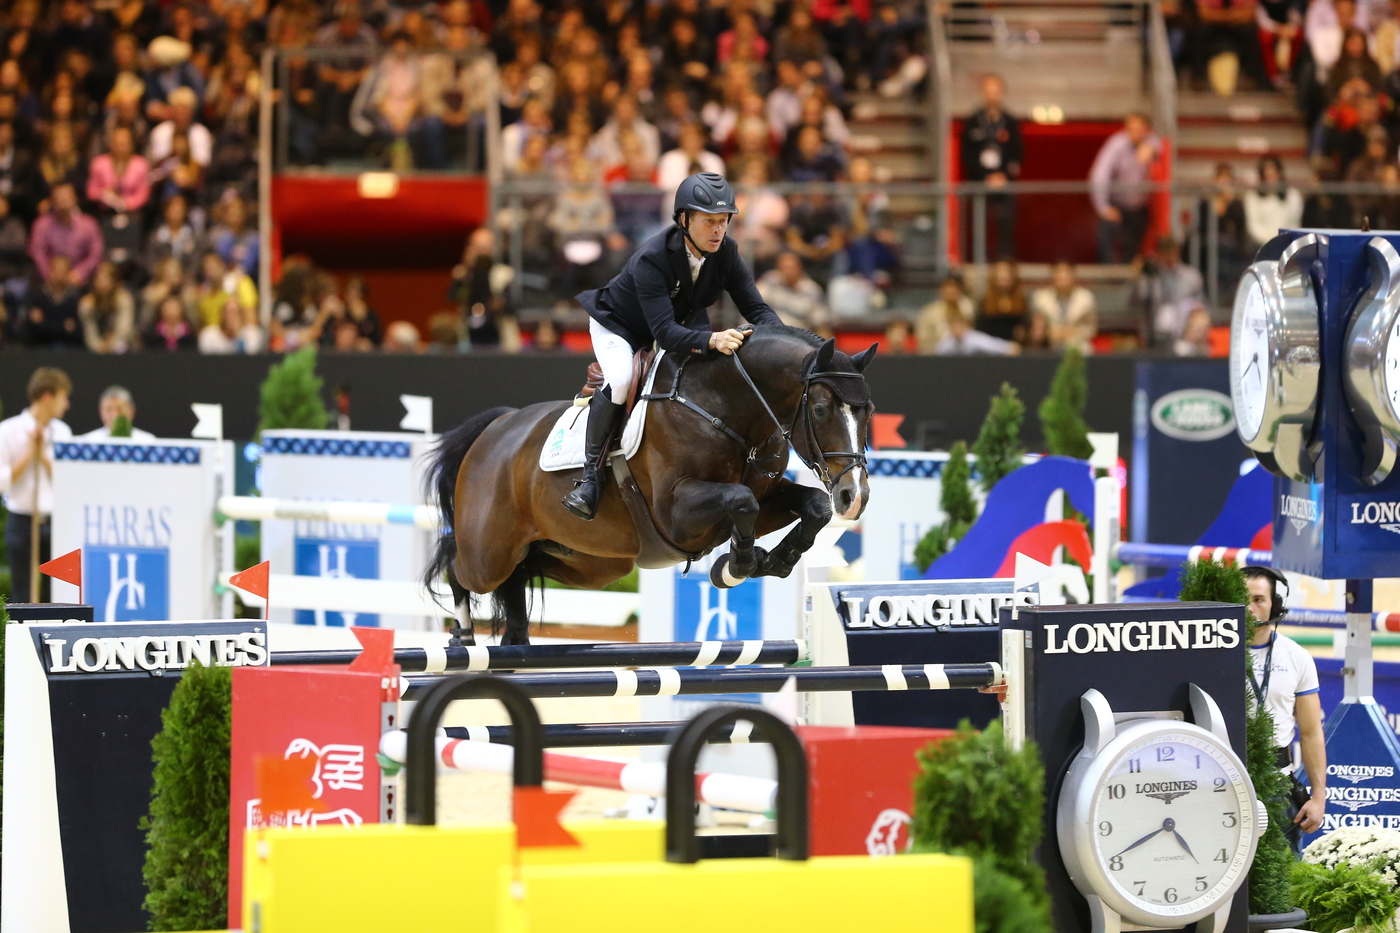 Longines Show Jumping Event: Longines  – Official Timekeeper of Equita'Lyon 3